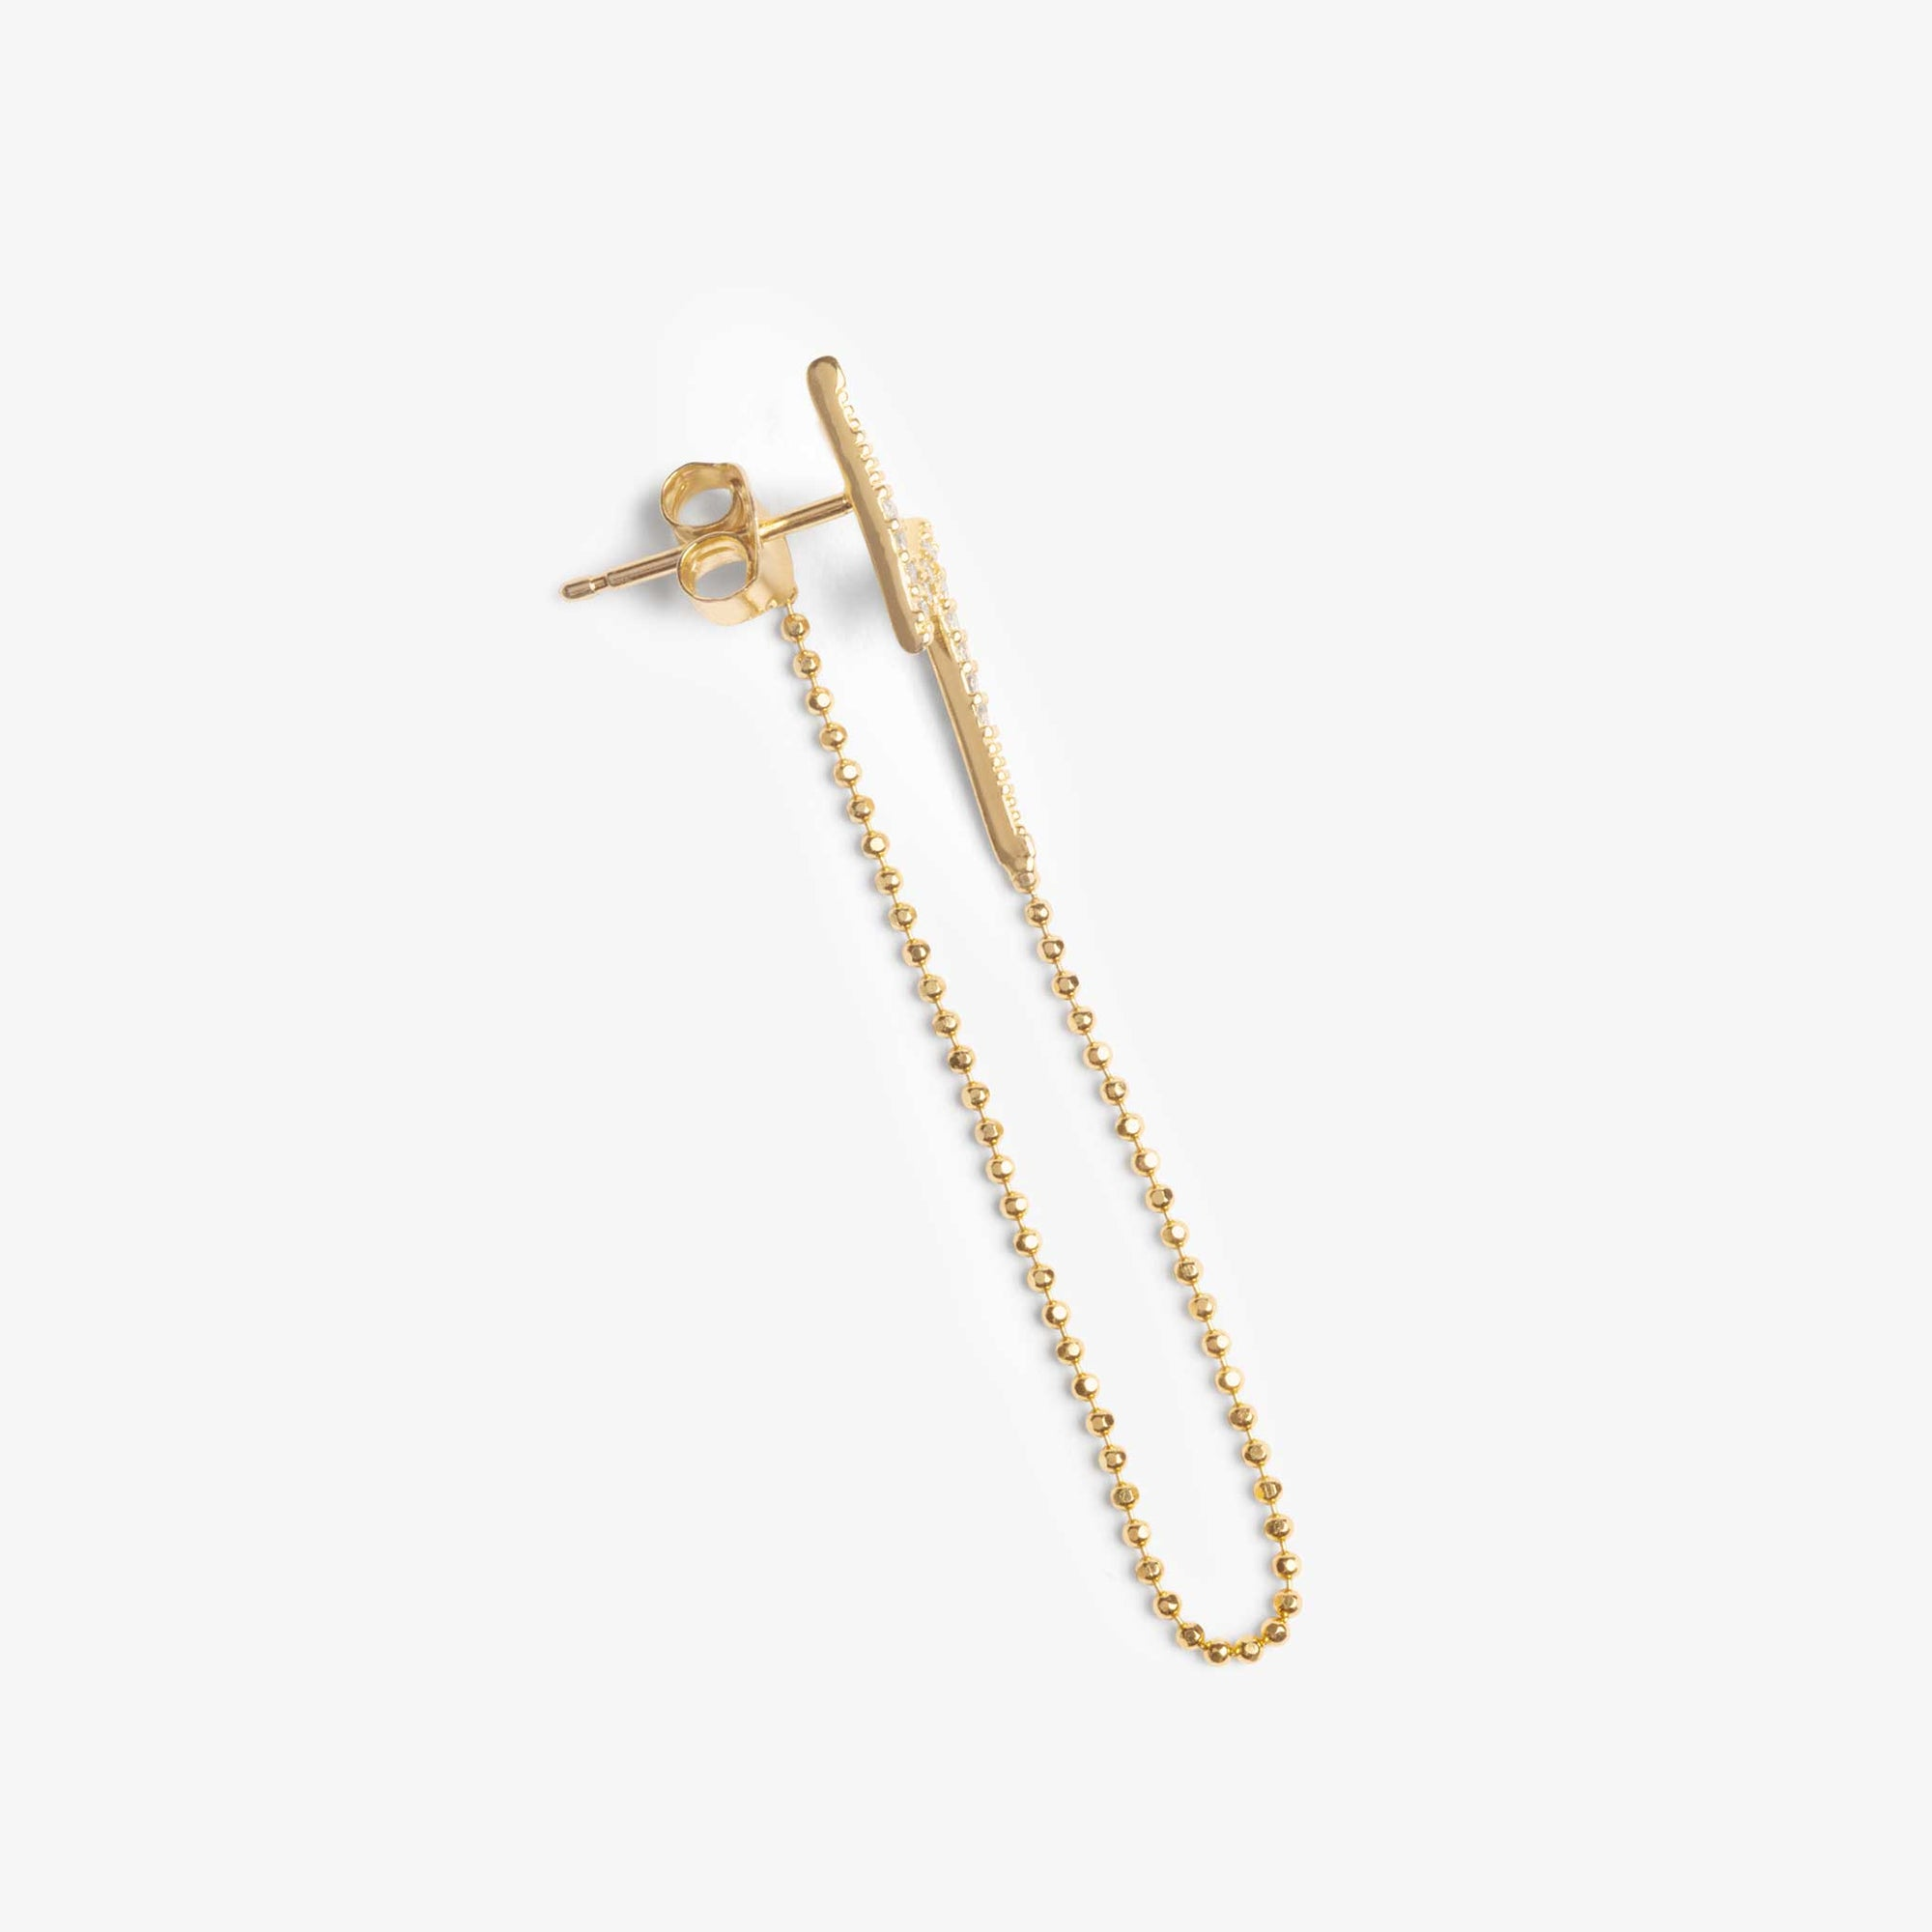 Lightning bolt stud with a chain dangle that connects to the back of the stud.